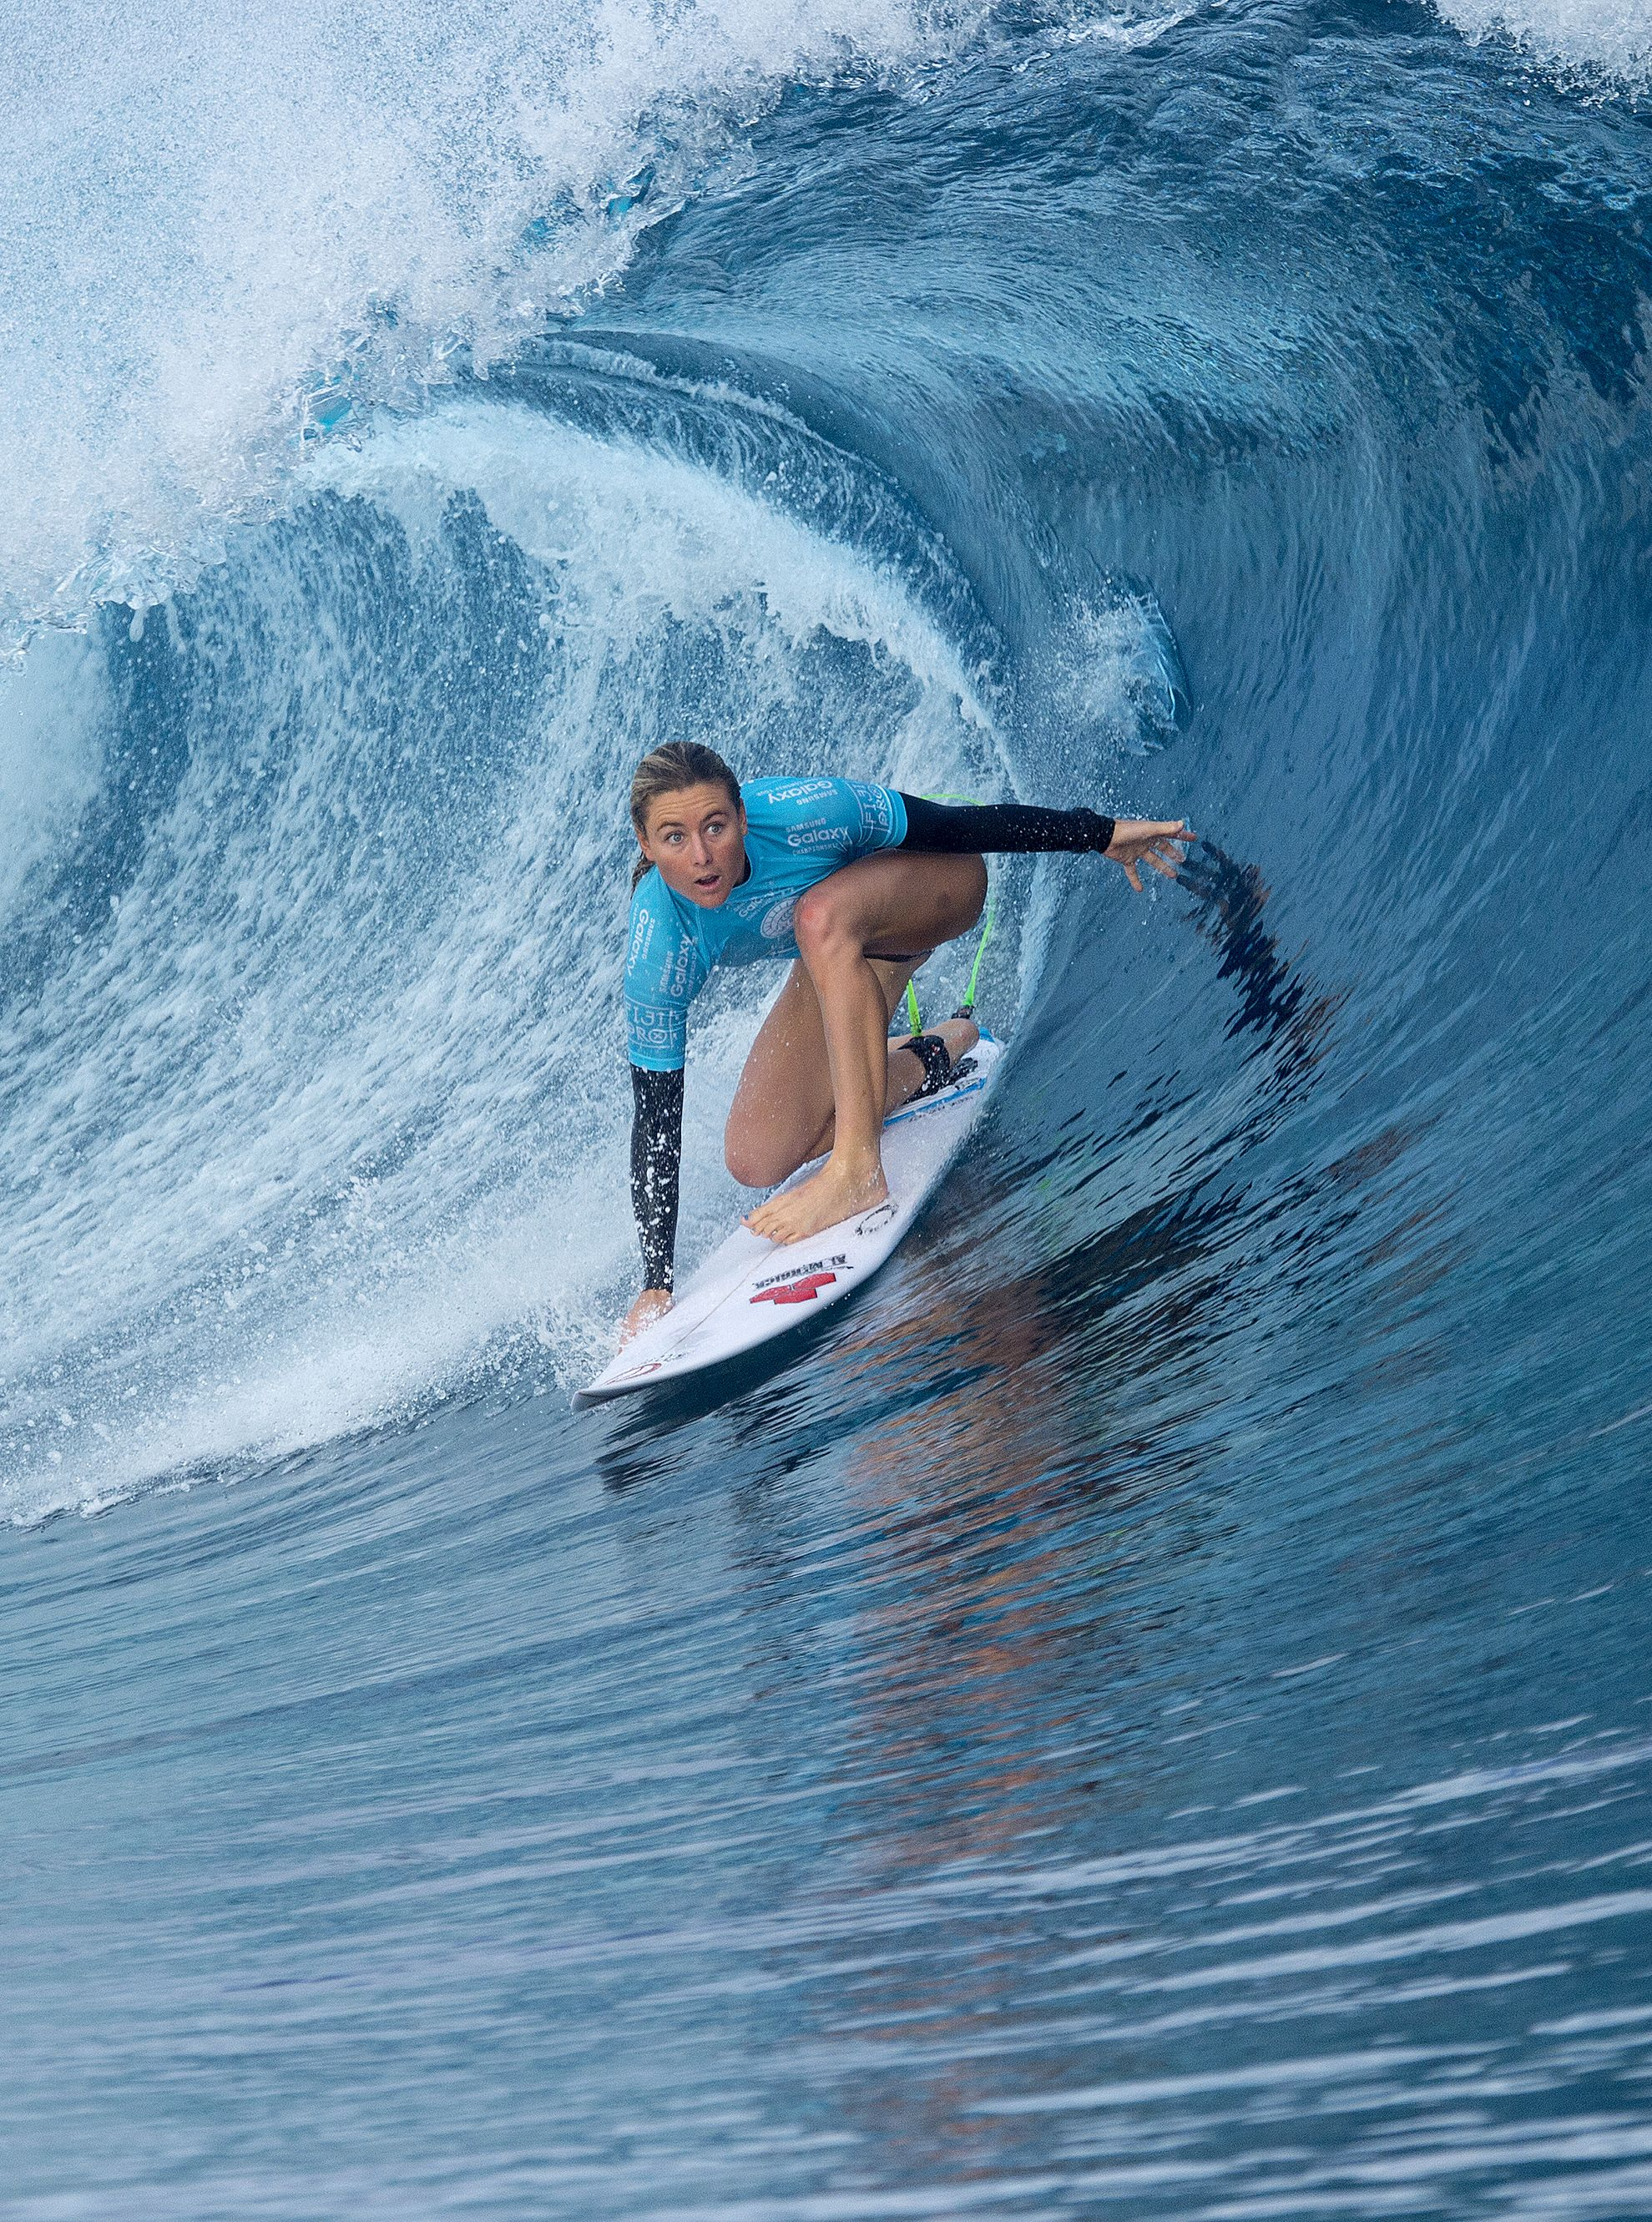 My First Surfboard With Images Surfer Surfing Surfing Pictures